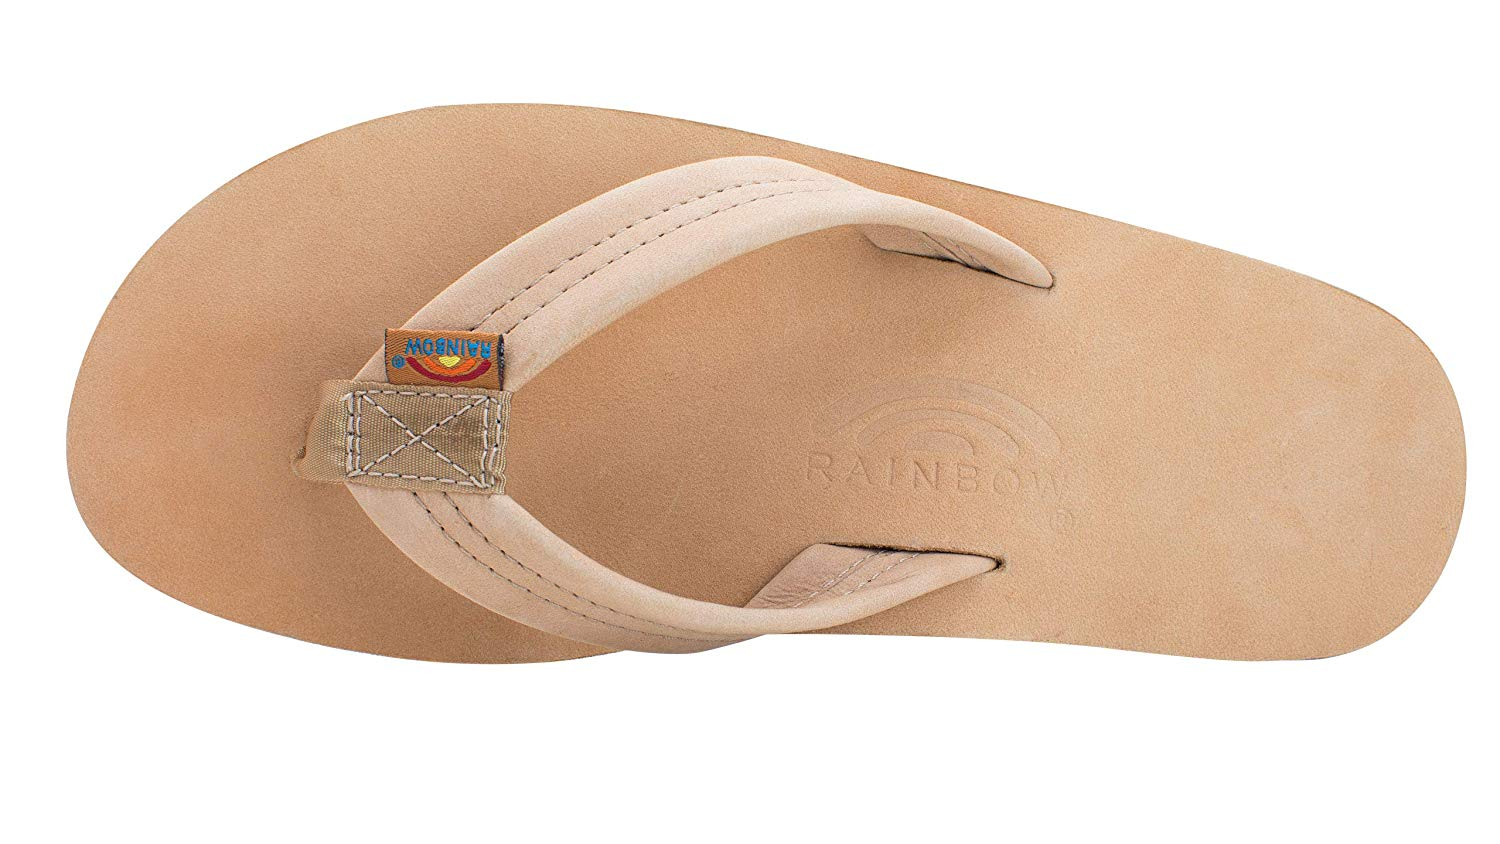 Rainbow Sandals Sierra Brown Single Layer Premier Leather with Arch Support Womens SANDALS 301ALTS0-SRBR-W